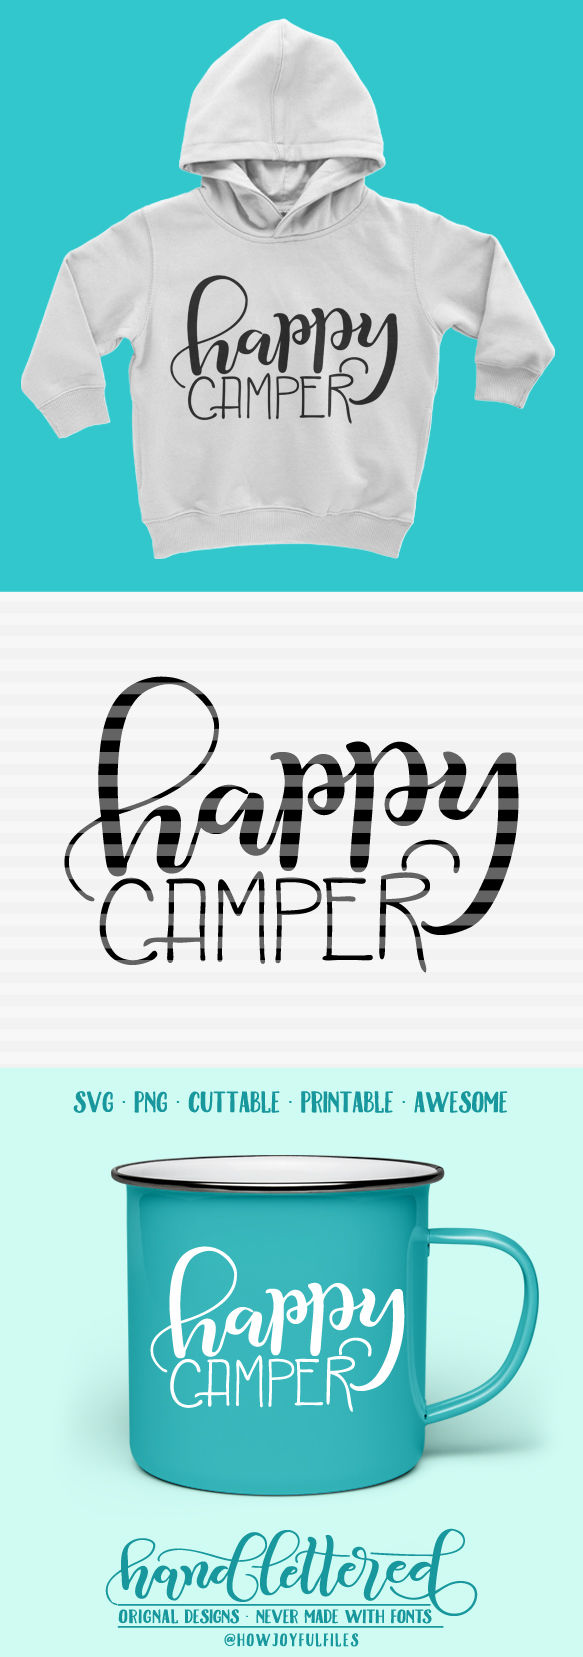 Happy Camper Lettering Svg Dxf Pdf Files Hand Drawn Lettered Cut File Graphic Overlay By Howjoyful Files Thehungryjpeg Com